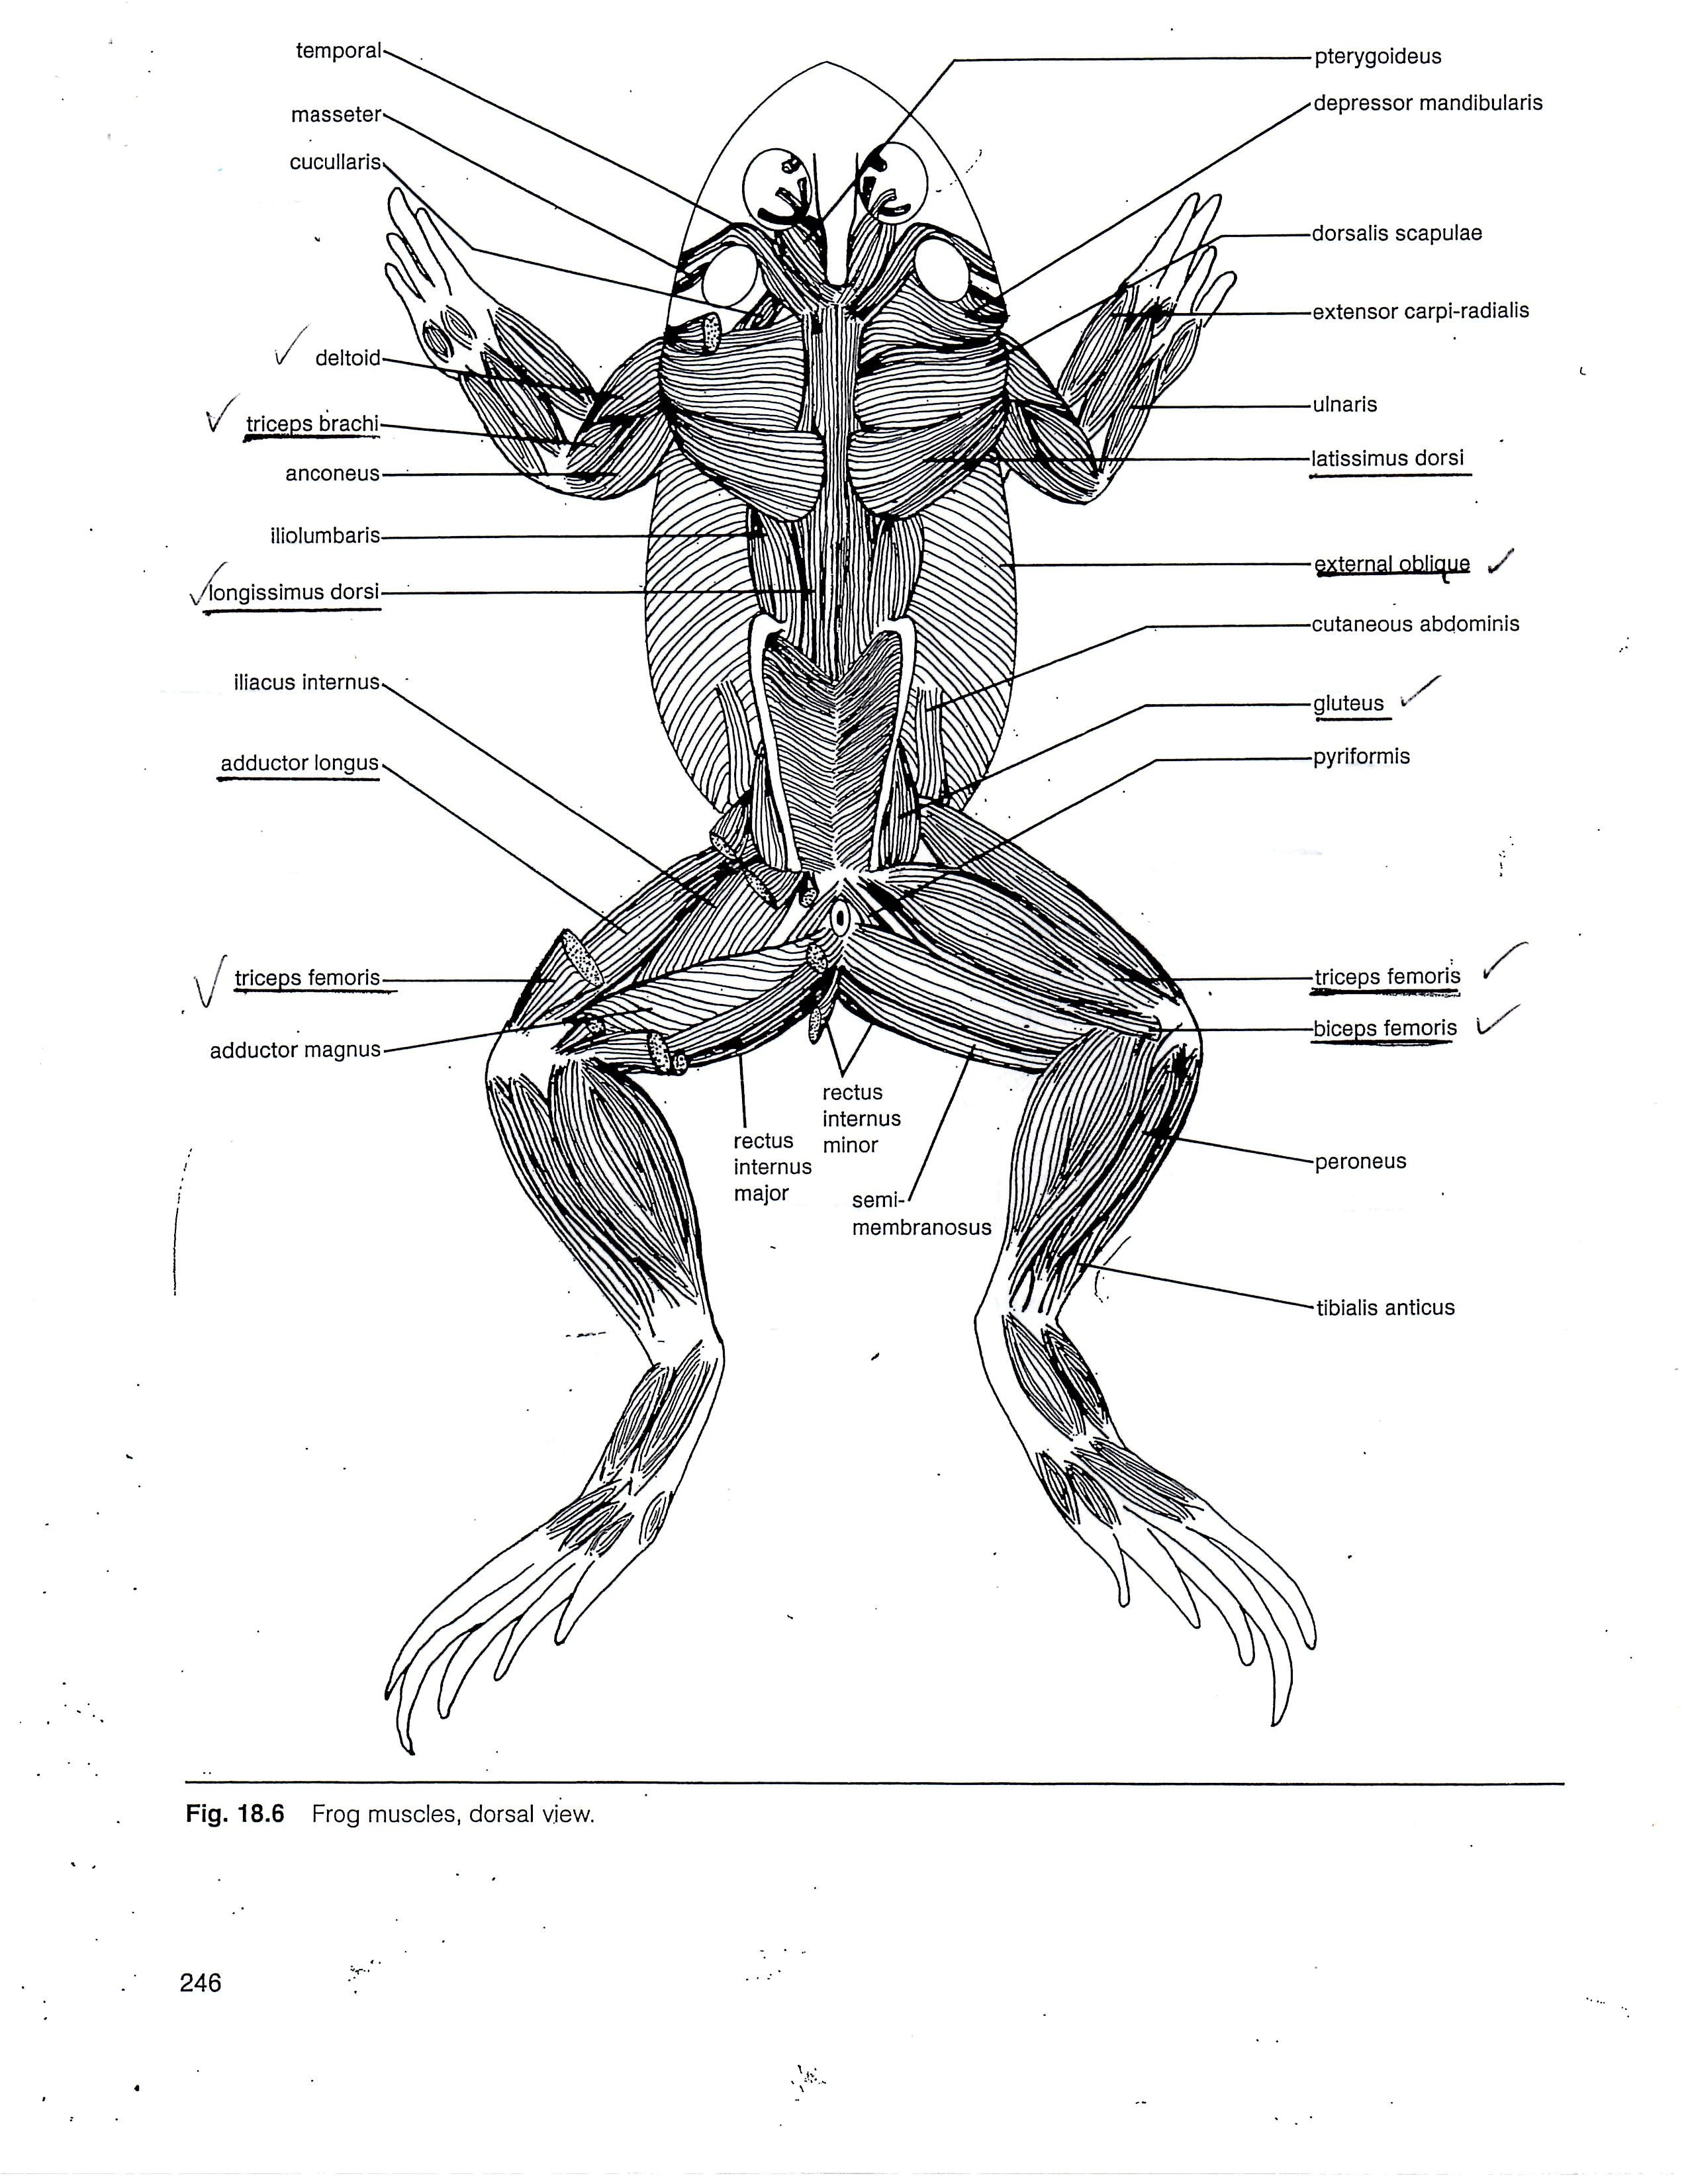 medium resolution of frog muscle anatomy muscular system of the frog human anatomy diagram